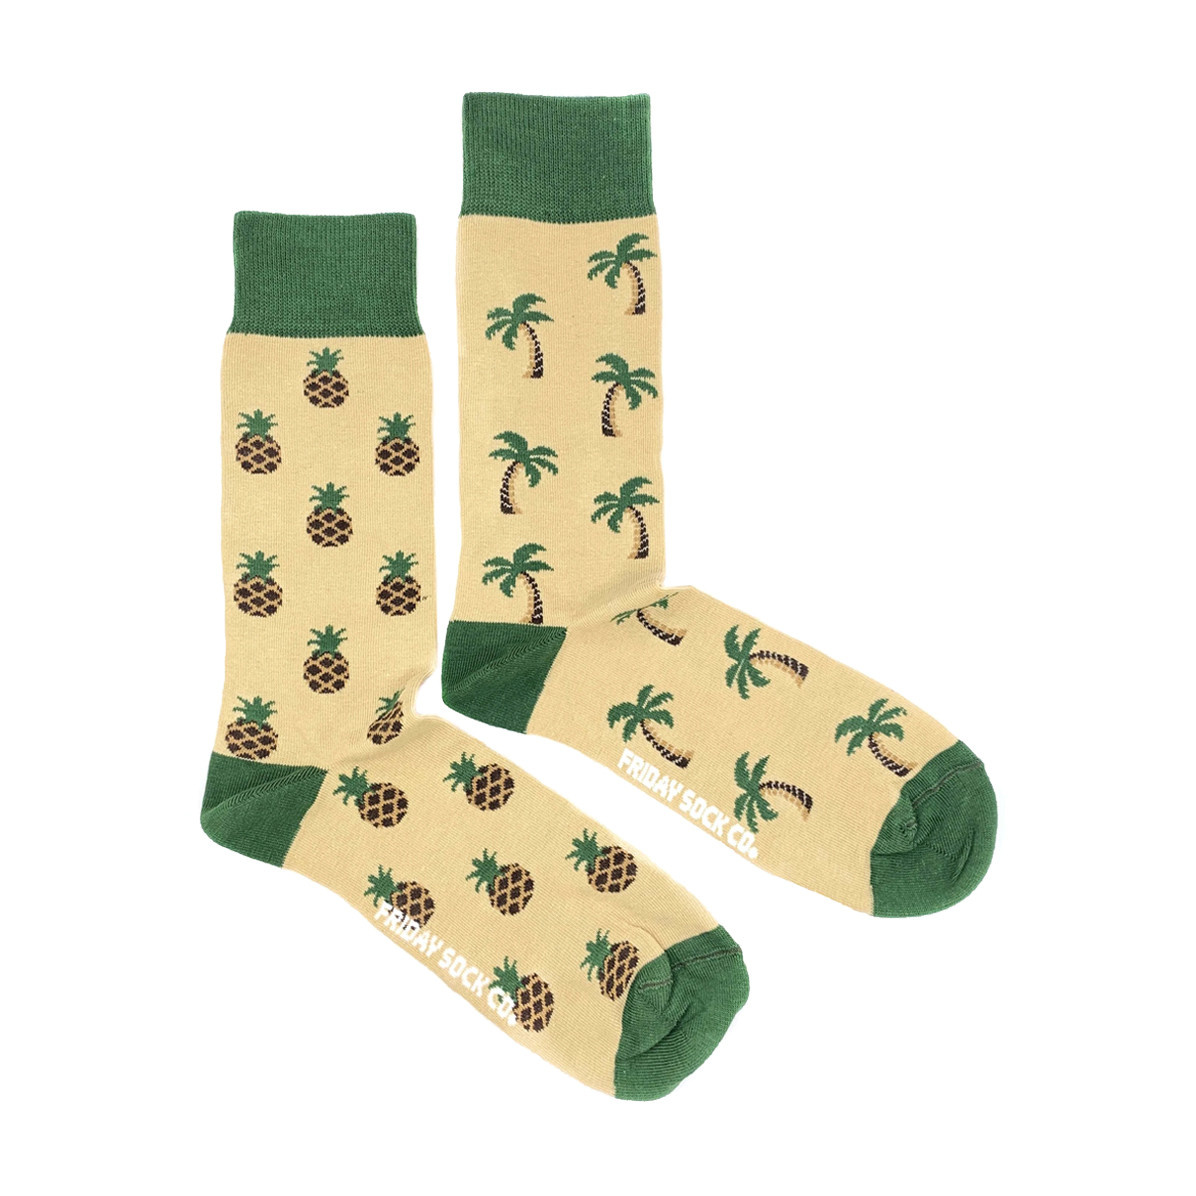 Friday Sock Co. Friday Sock Co. Men's Pineapple & Palm M 7 - 12 (W 8 - 13)